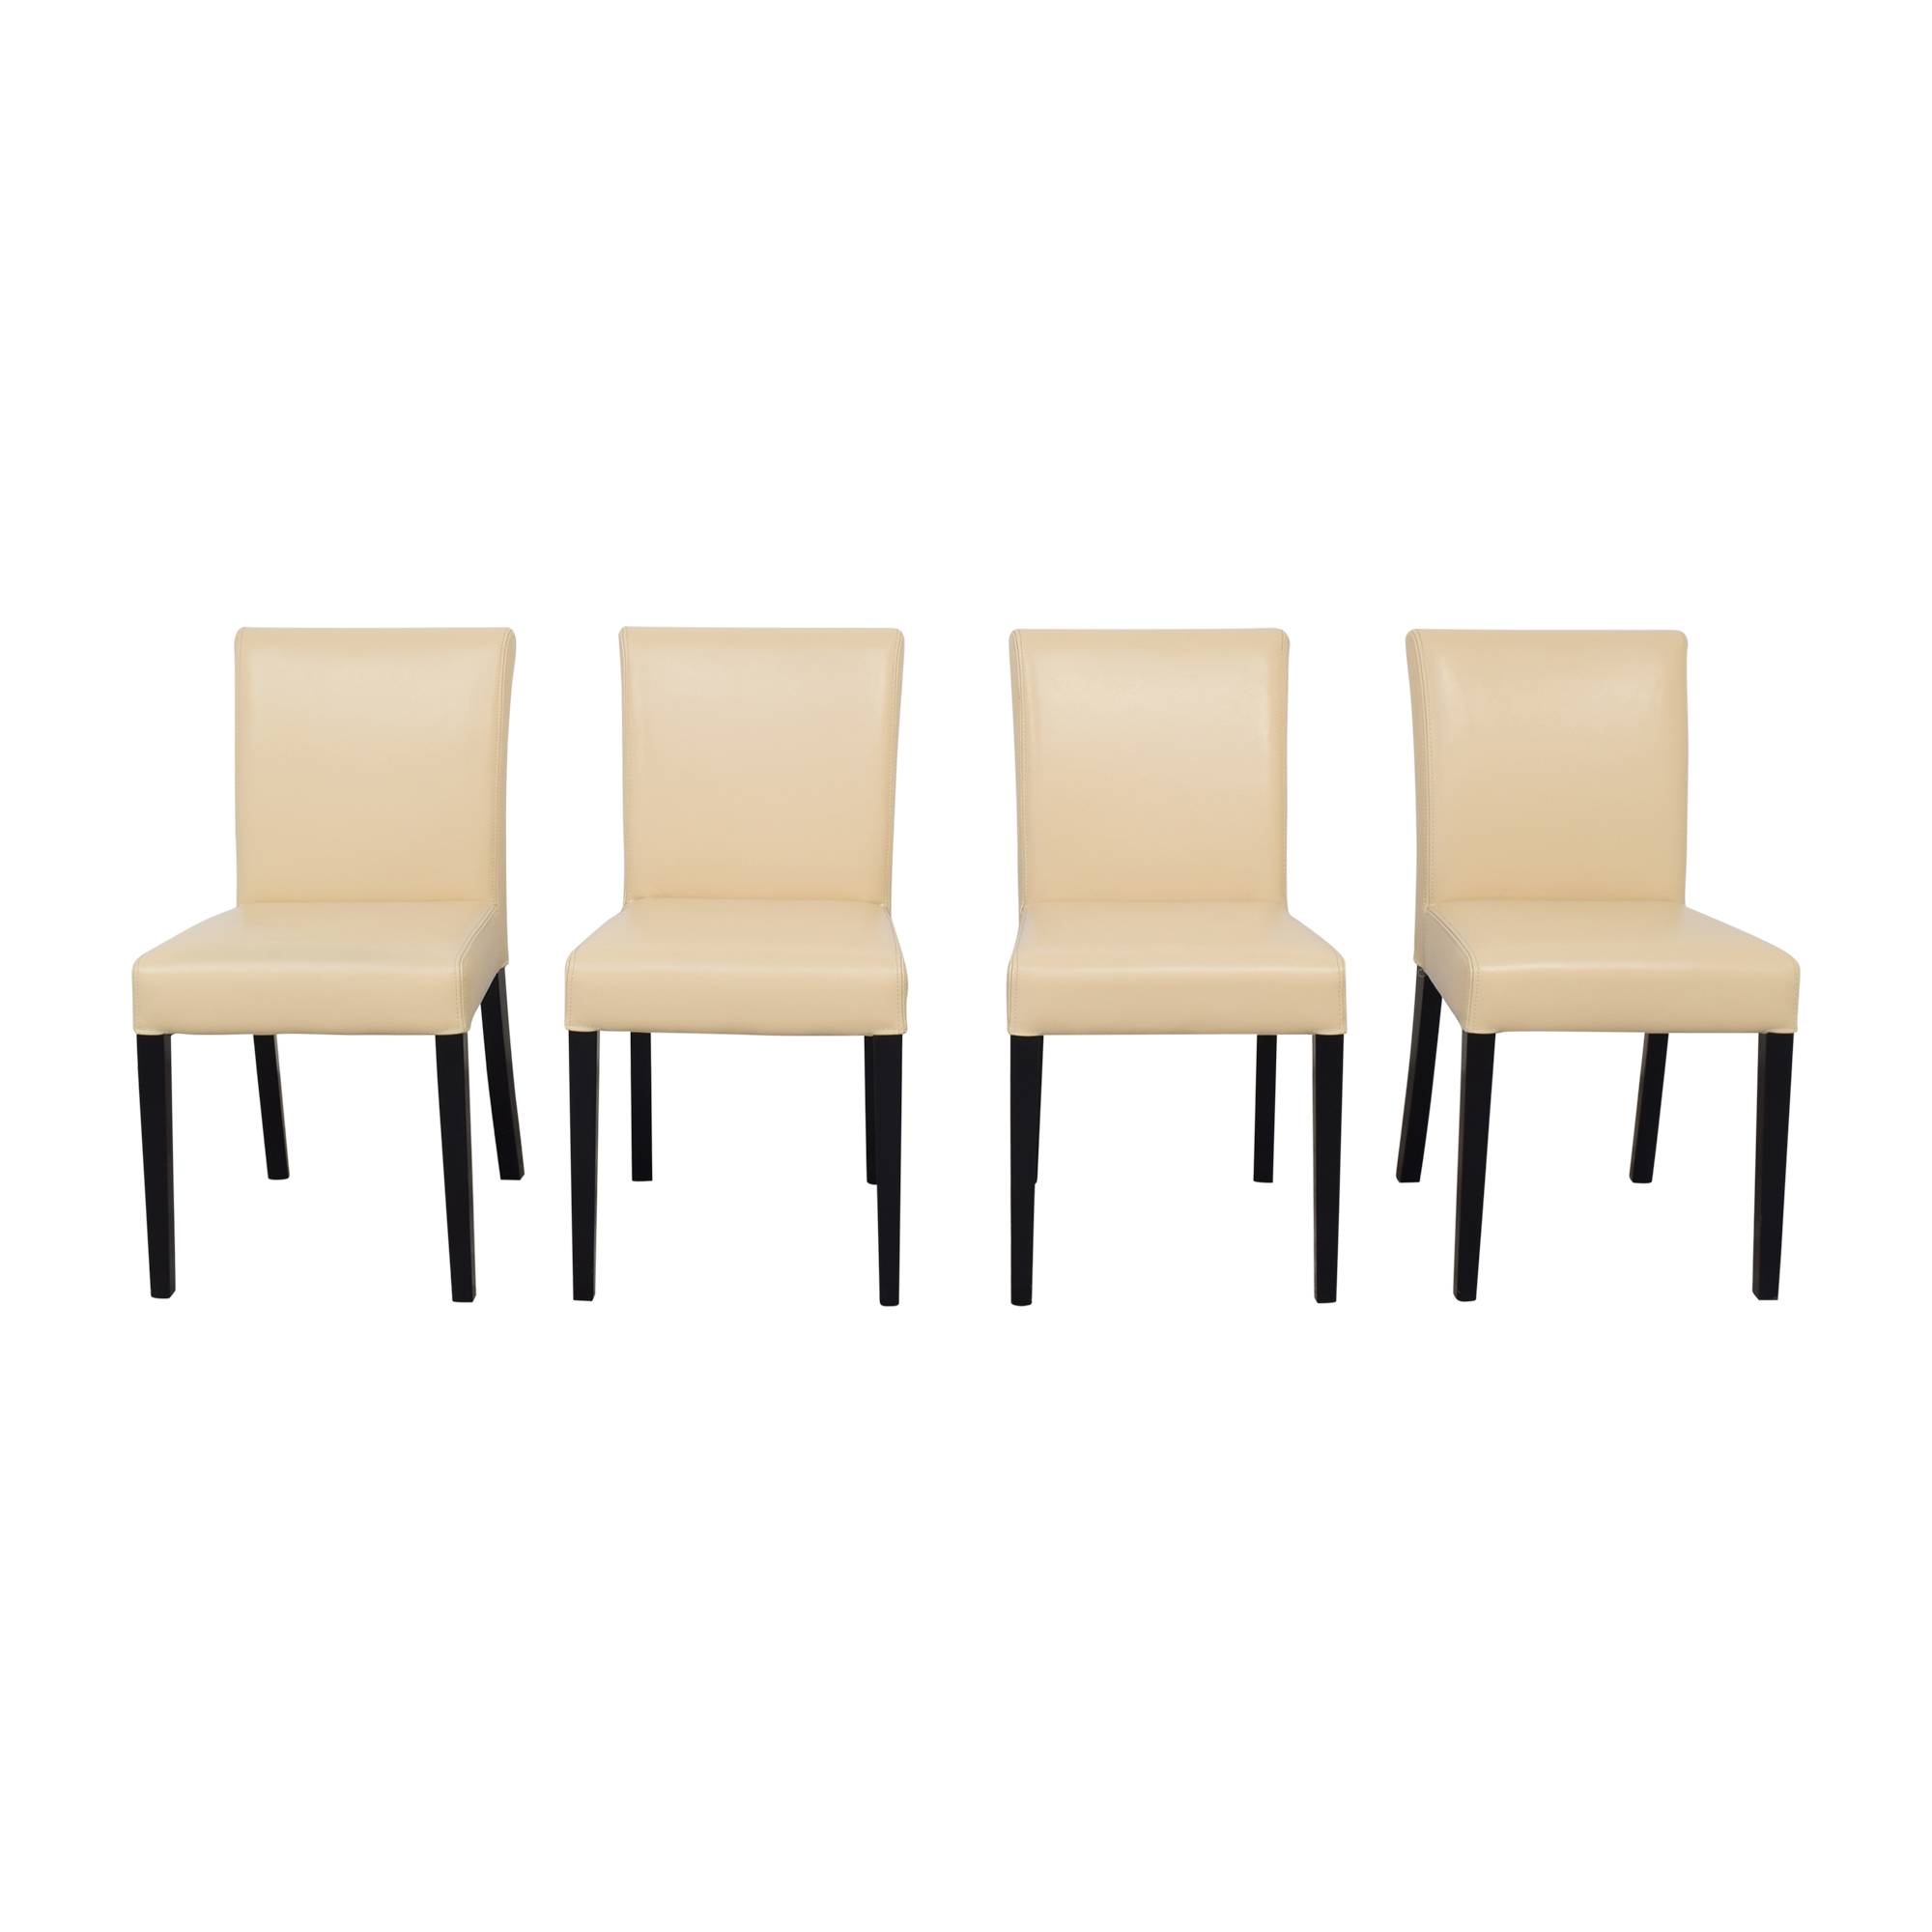 buy Crate & Barrel Lowe Ivory Dining Chairs Crate & Barrel